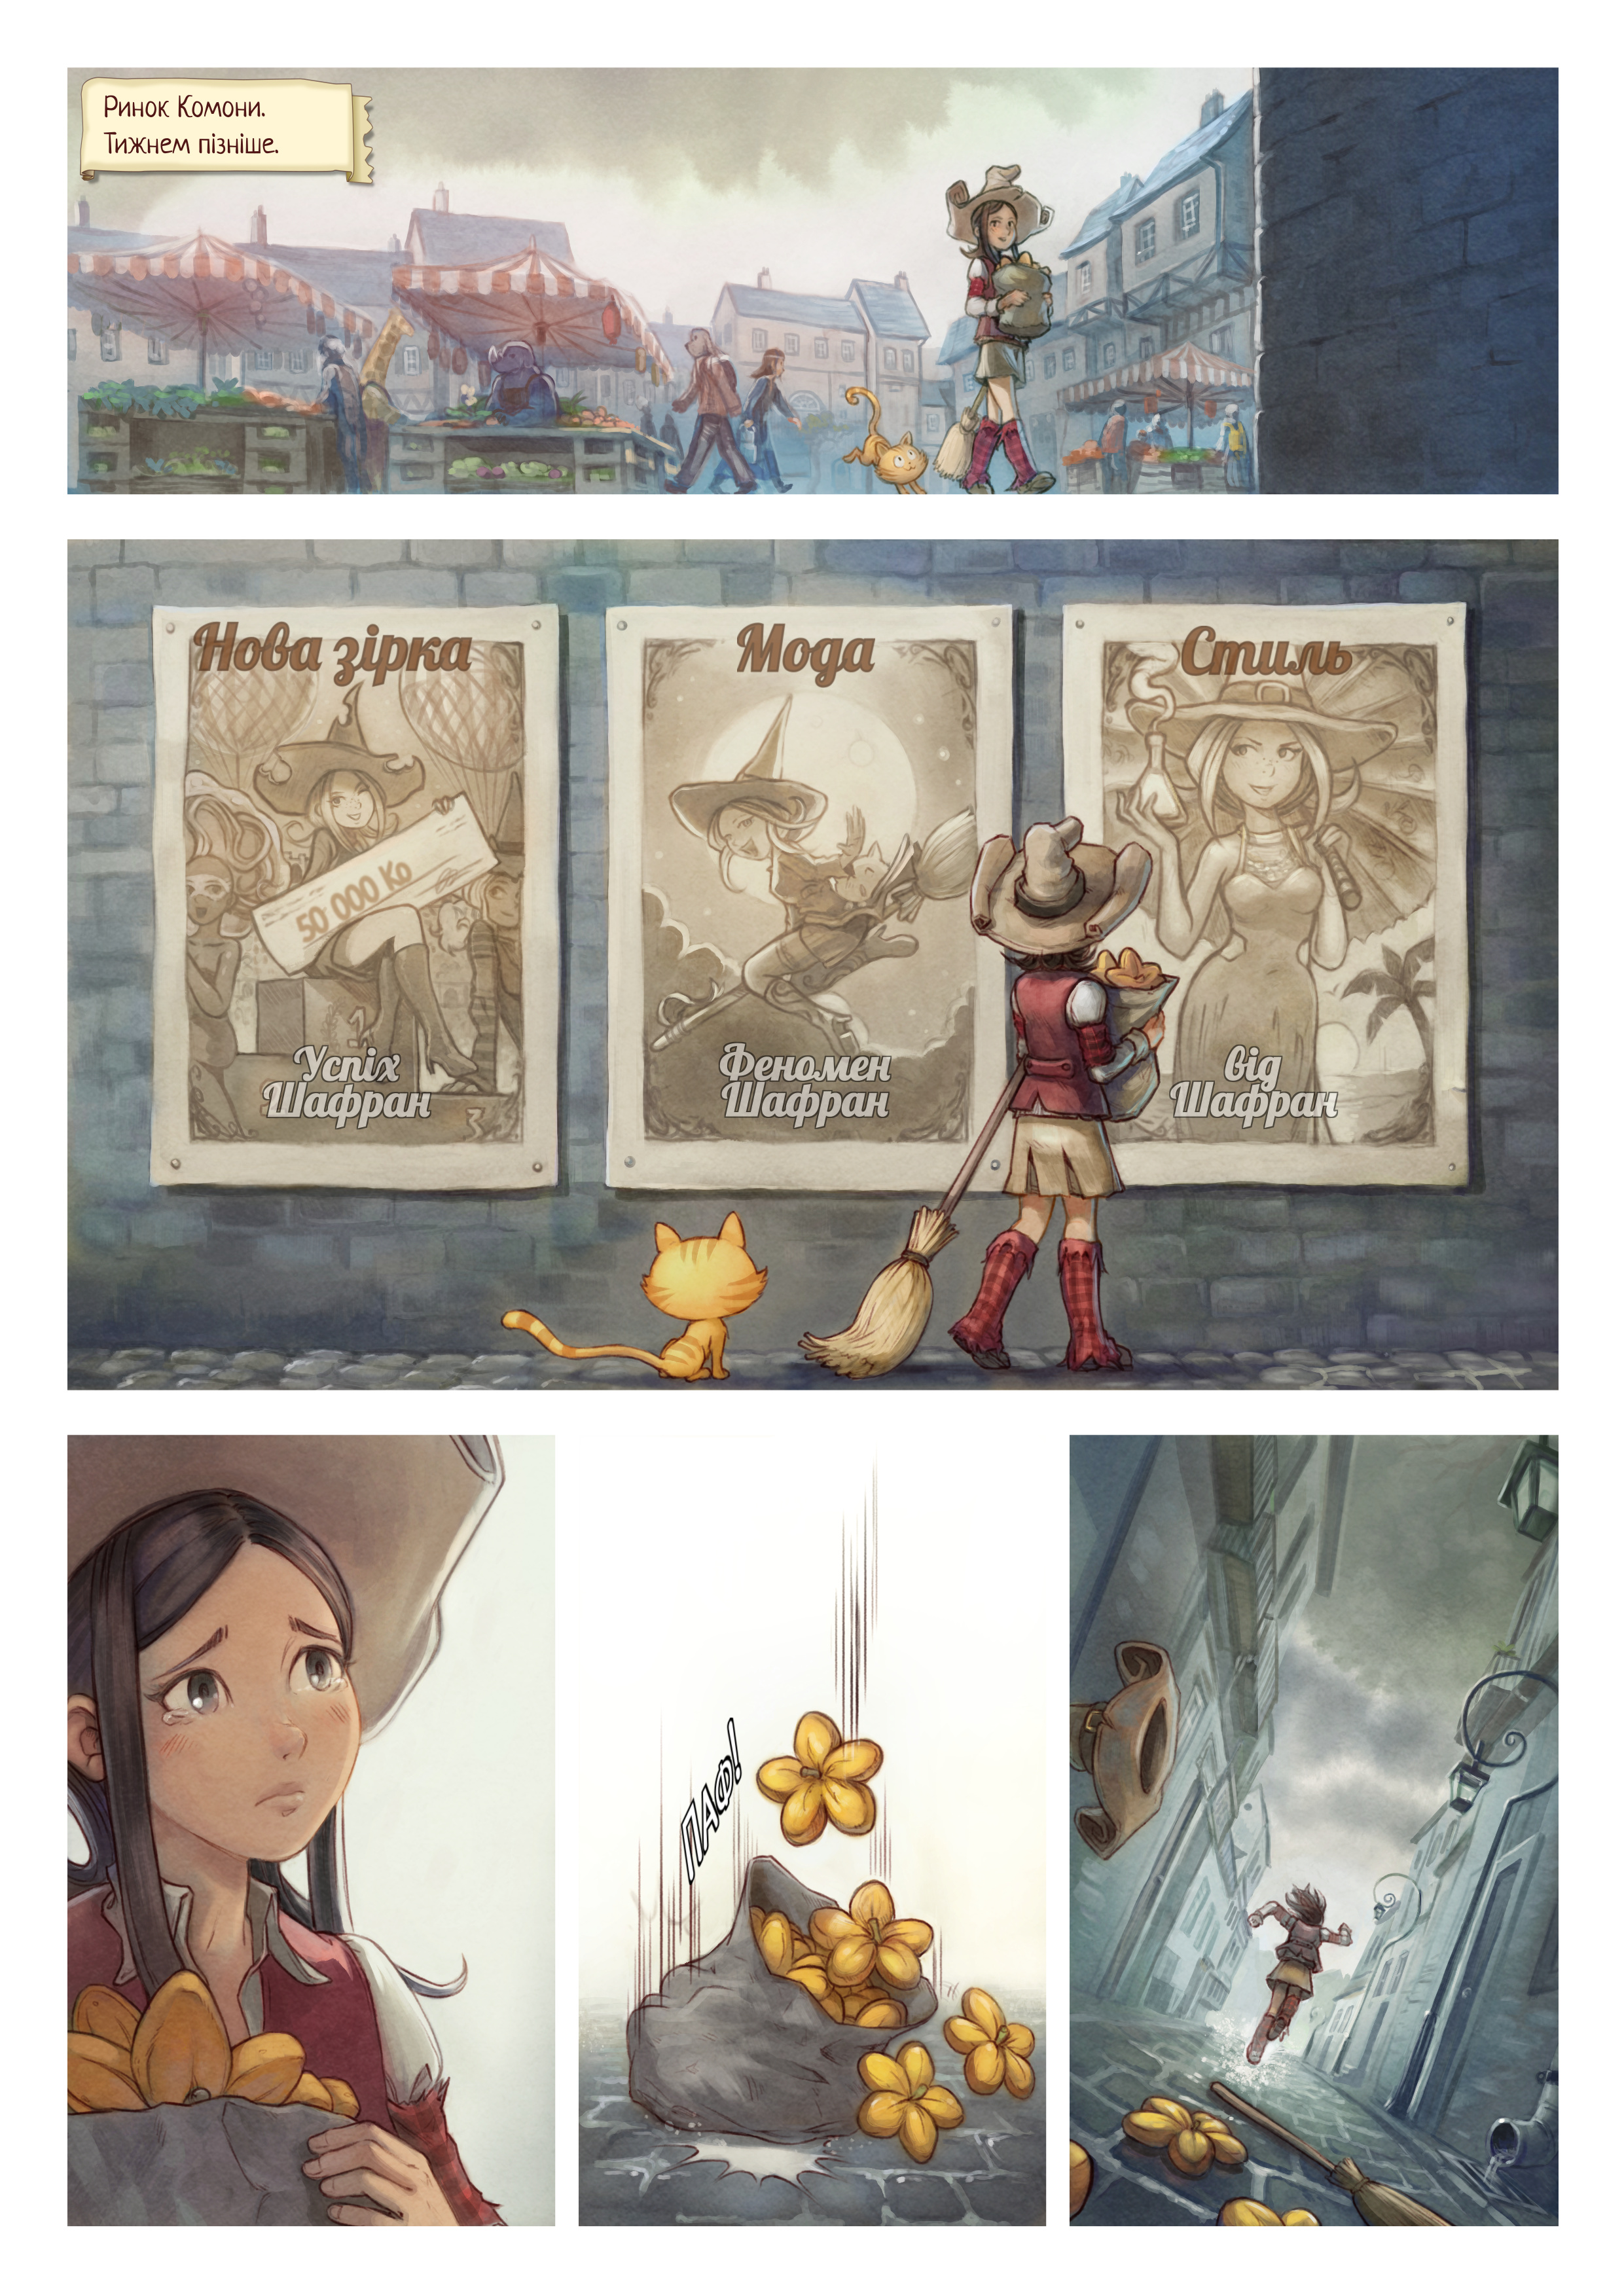 A webcomic page of Pepper&Carrot, епізод 23 [uk], стор. 1